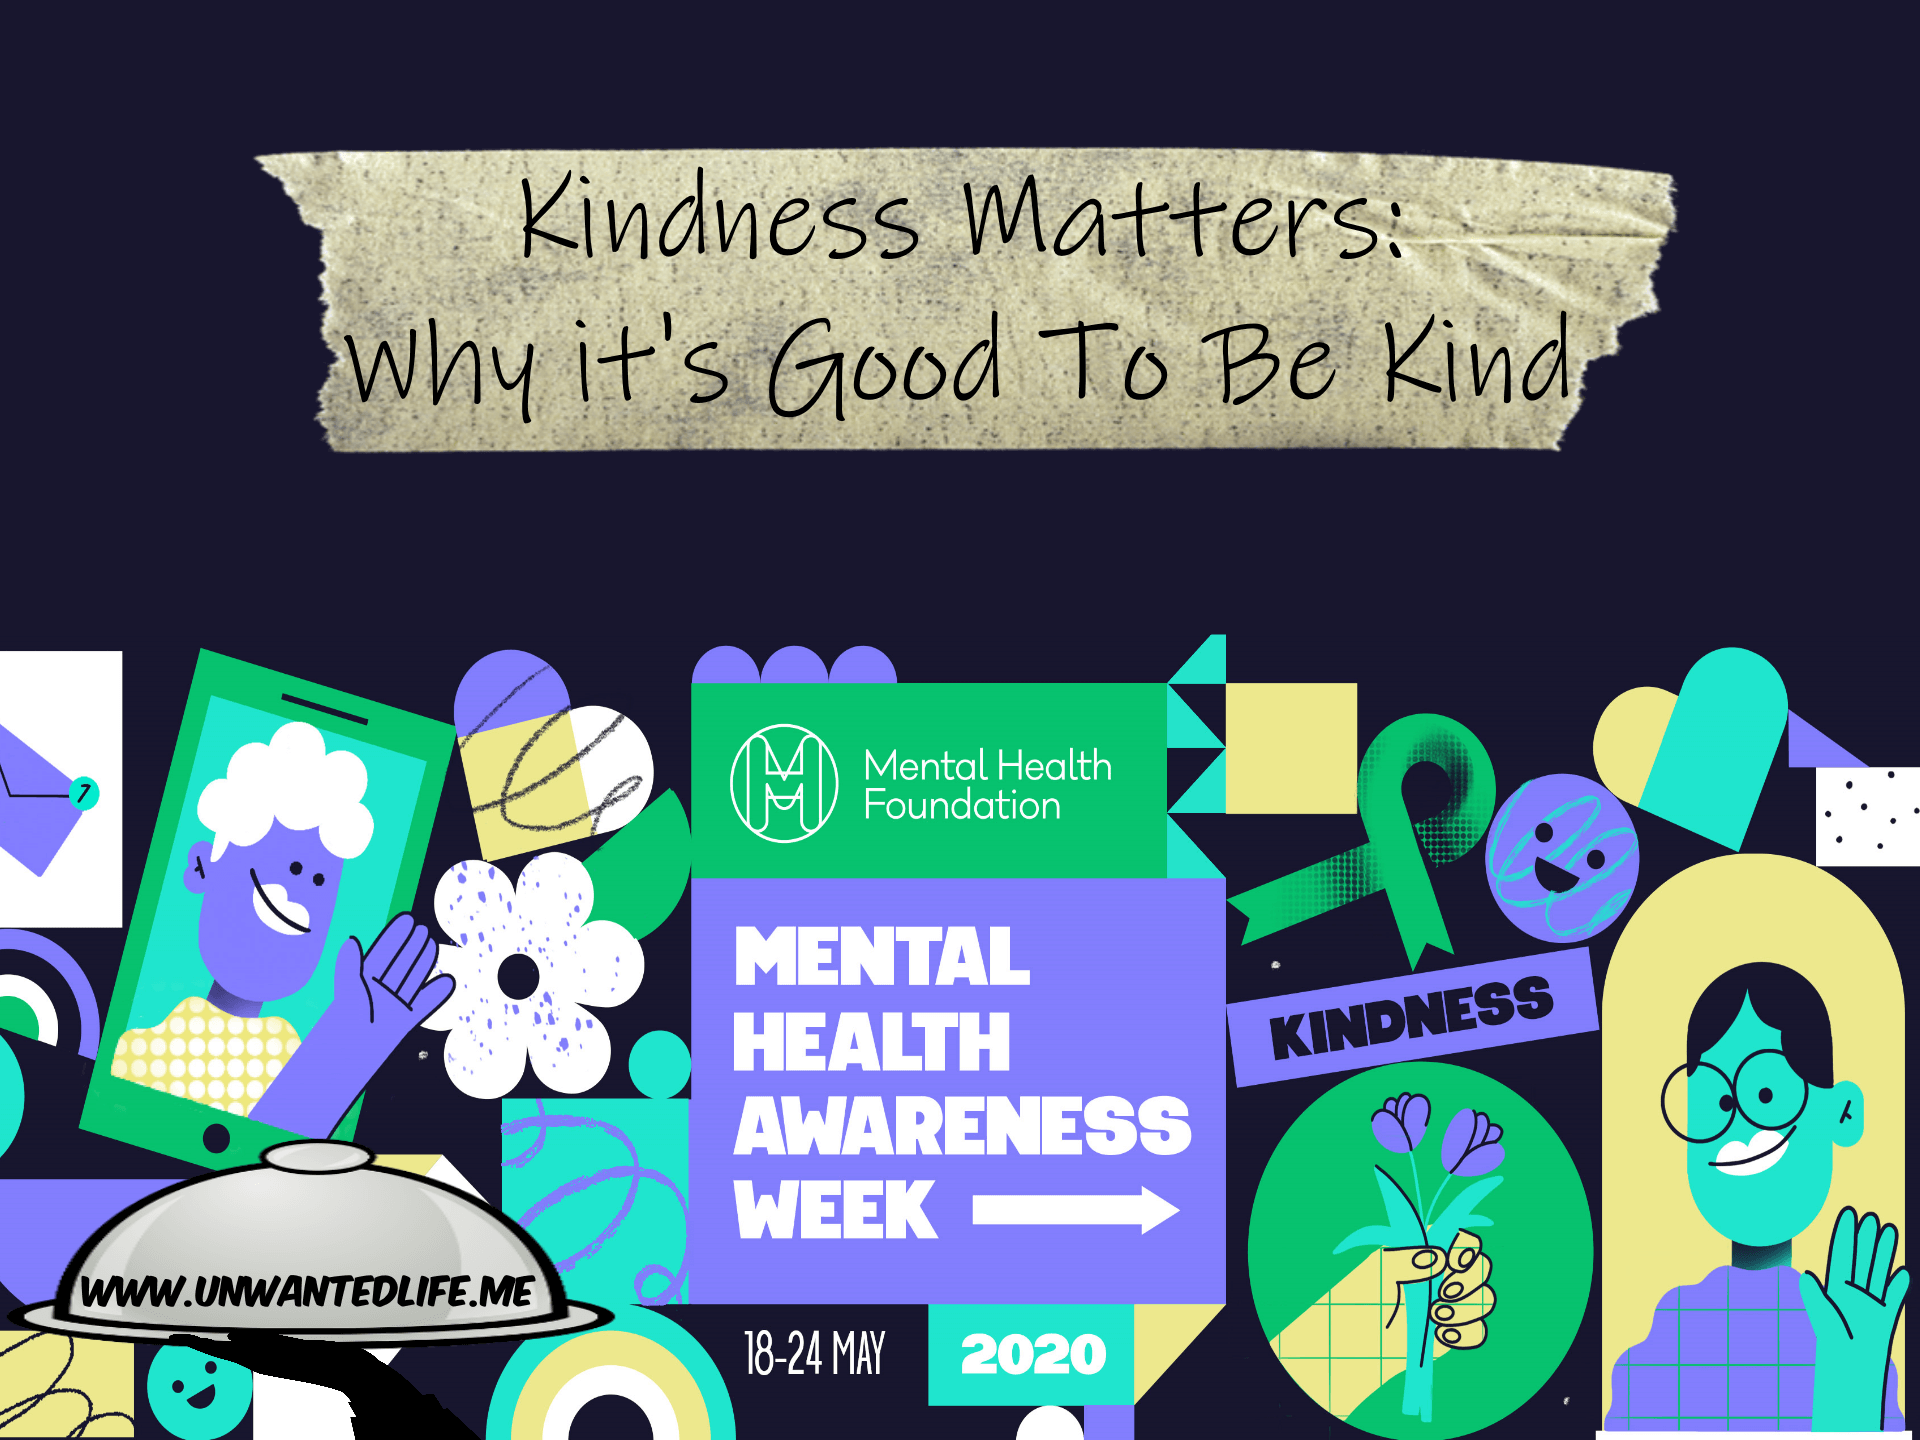 A promo picture for Mental Health Awareness Week created by The Mental Health Foundation to promote - Kindness Matters Why It's Good To Be Kind